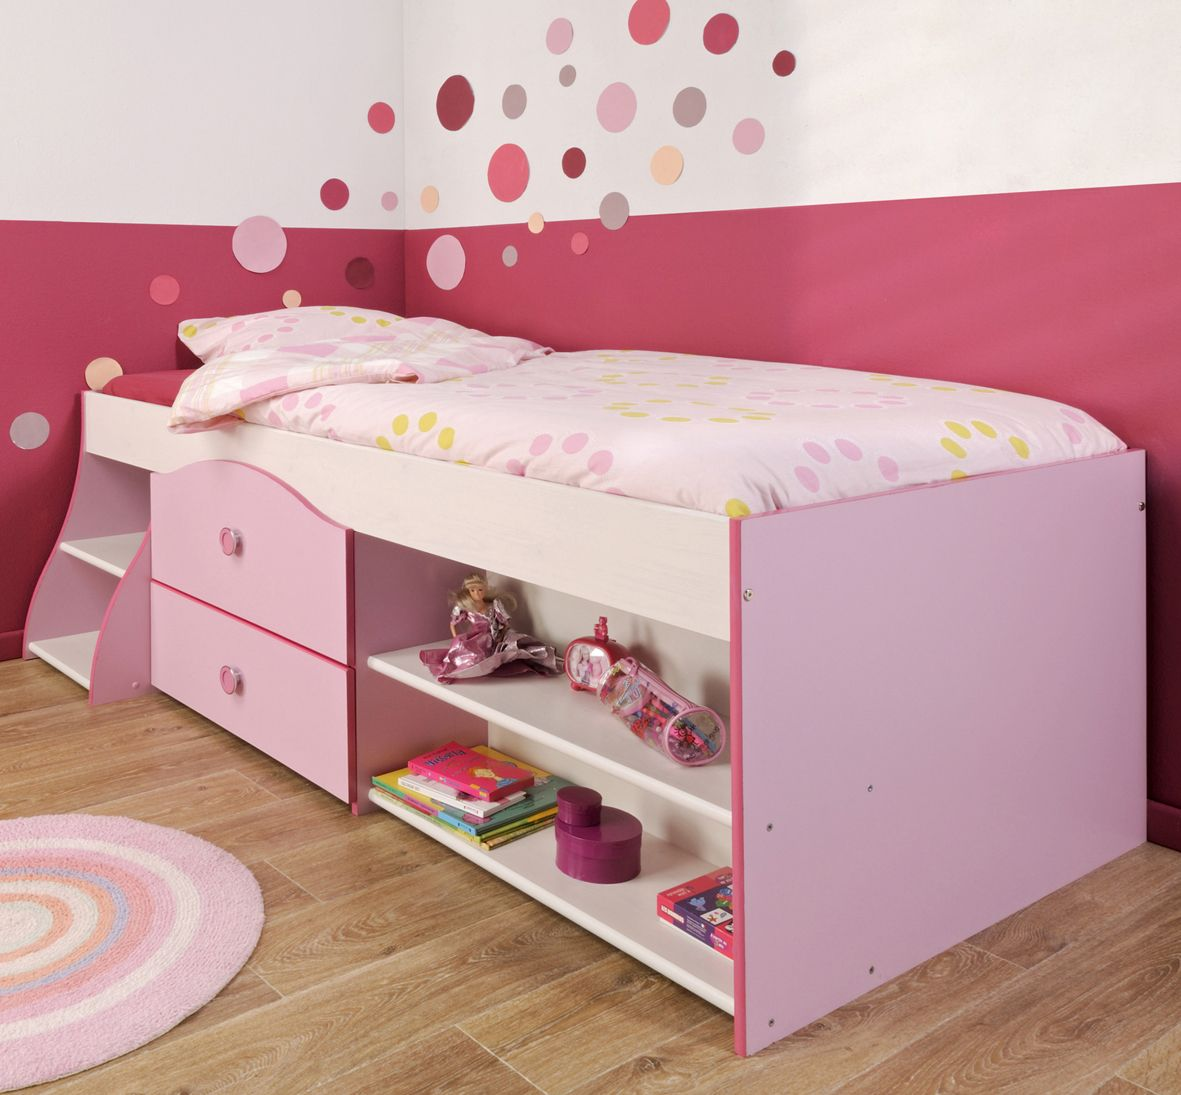 14 Lovable And Cute Kids Bed Designs You Must Have Fascinating